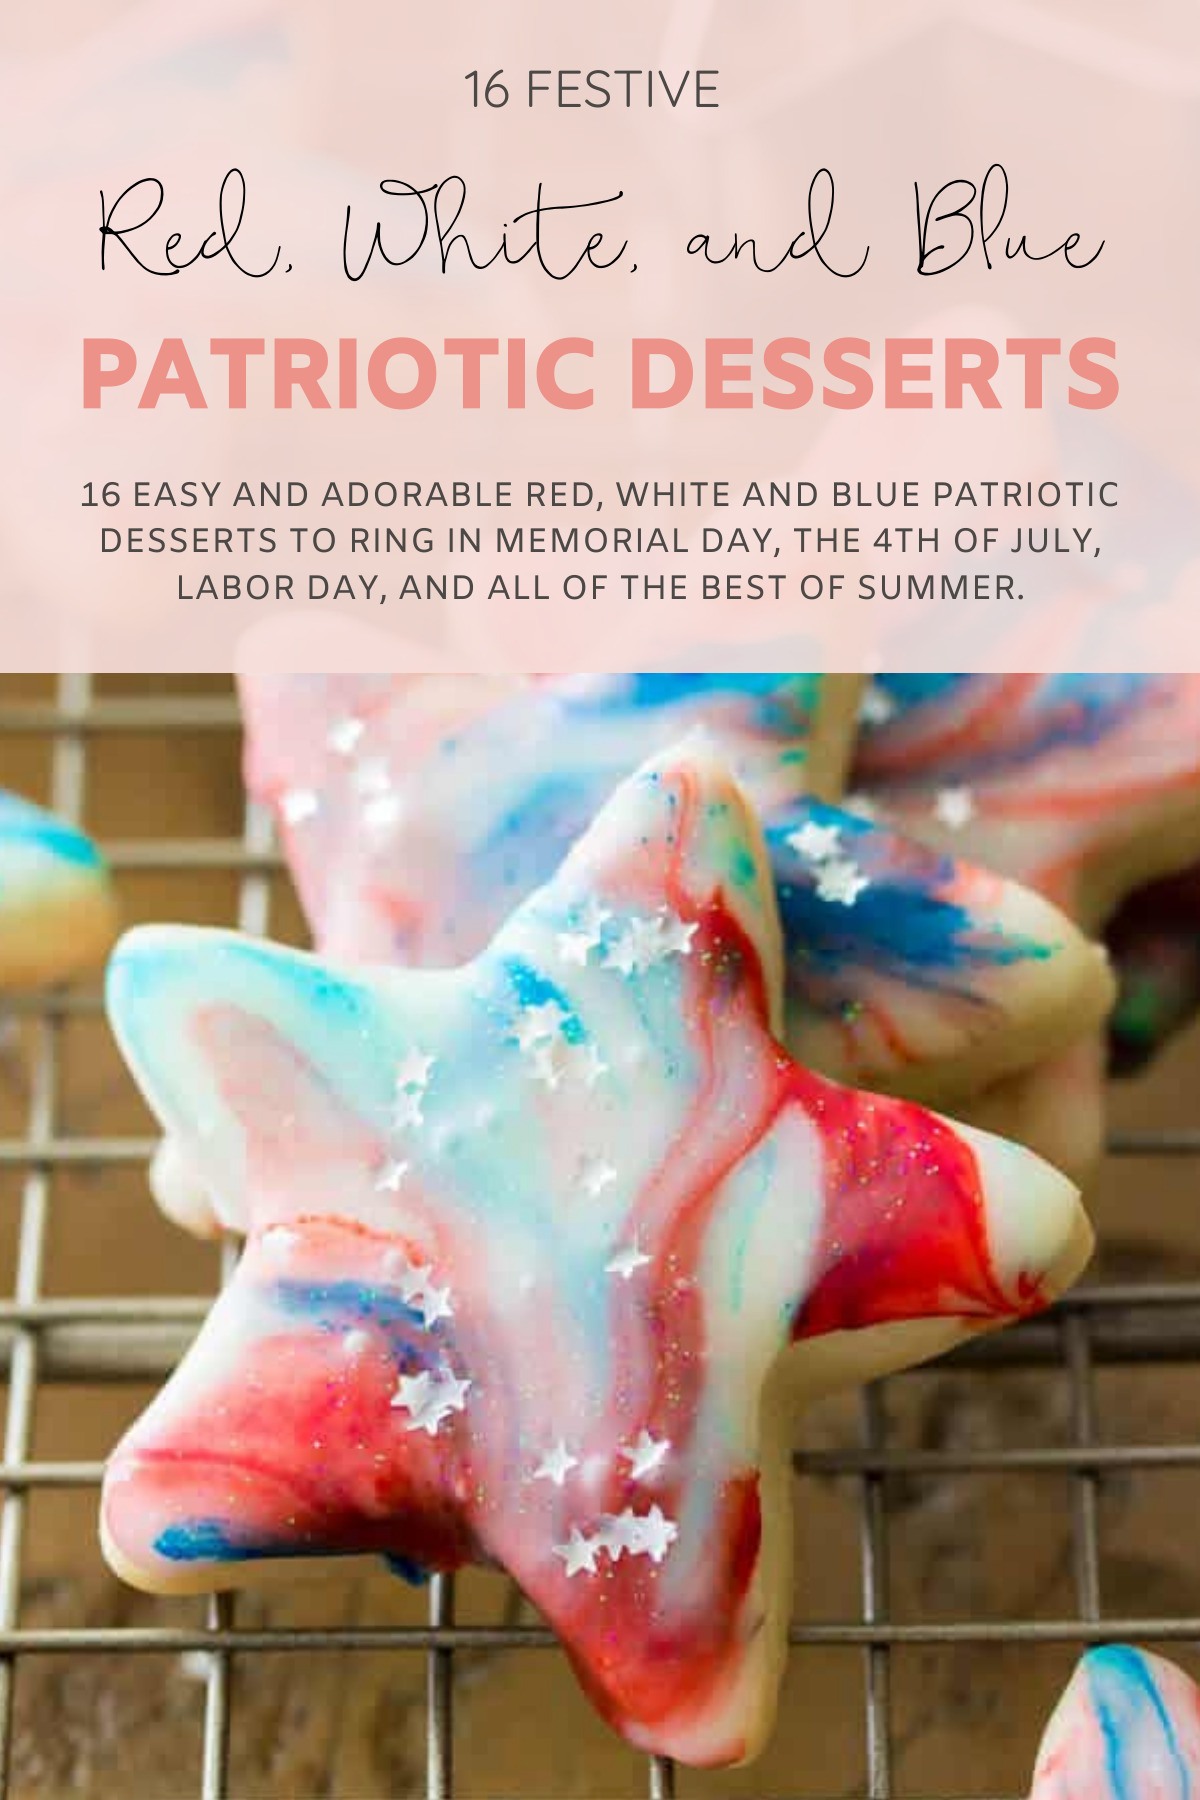 16 easy and adorable Red, White and Blue Patriotic Recipes ... the best festive food, treats, drinks, and more, to ring in Memorial Day, the 4th of July, and all of the best of summer. | Red, White, and Blue Dessert Mini Fruit Pizzas | @glitterinclexi | GLITTERINC.COM